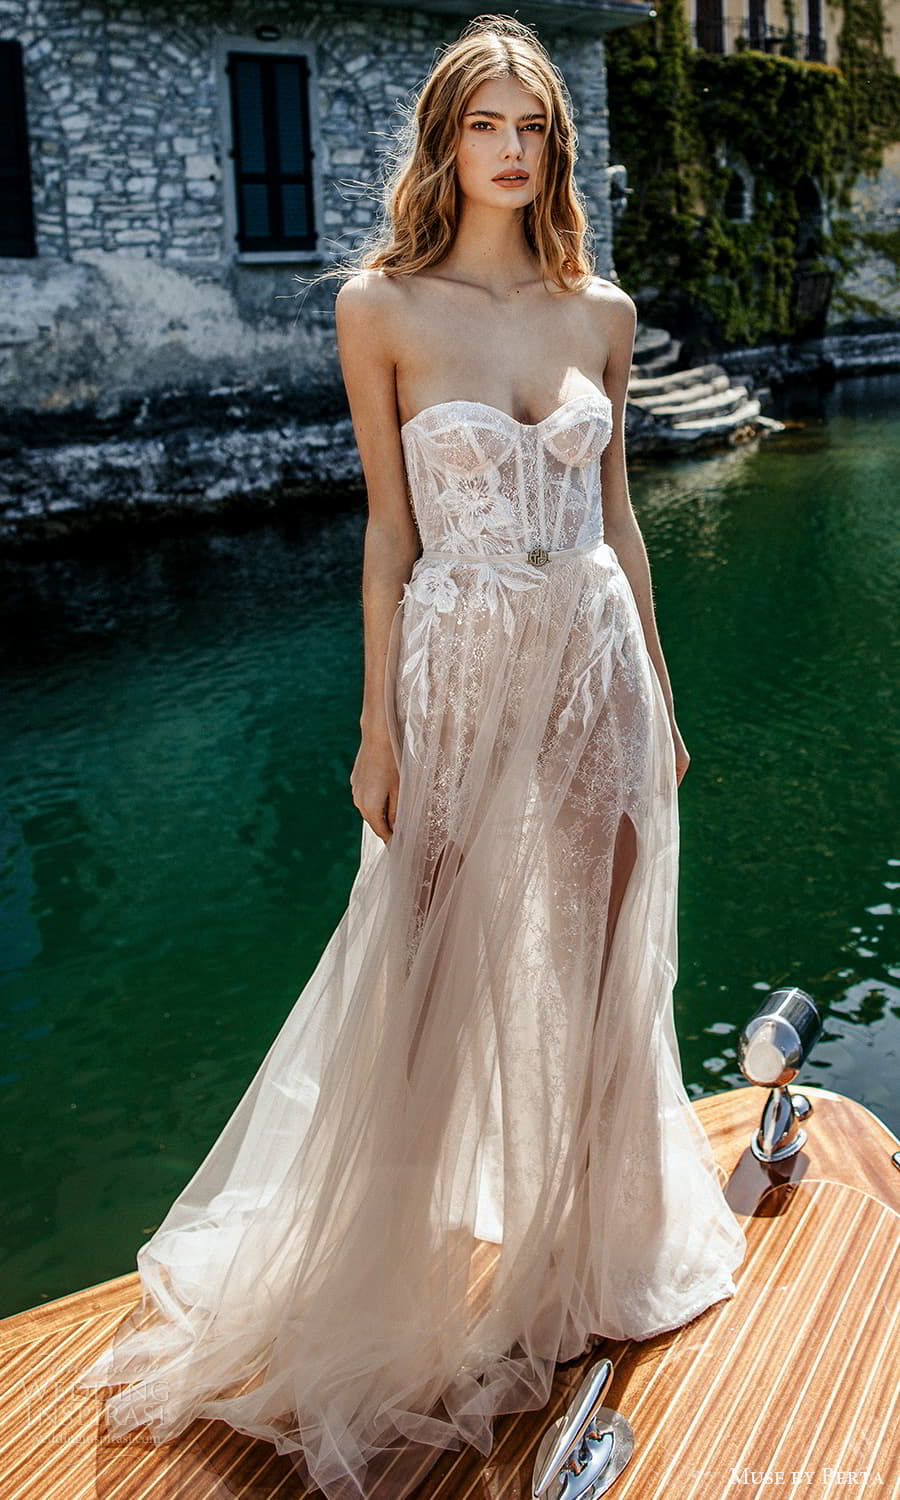 muse by berta spring 2022 bridal strapless sweetheart neckline fully embellished a line ball gown wedding dress chapel train (4) fv